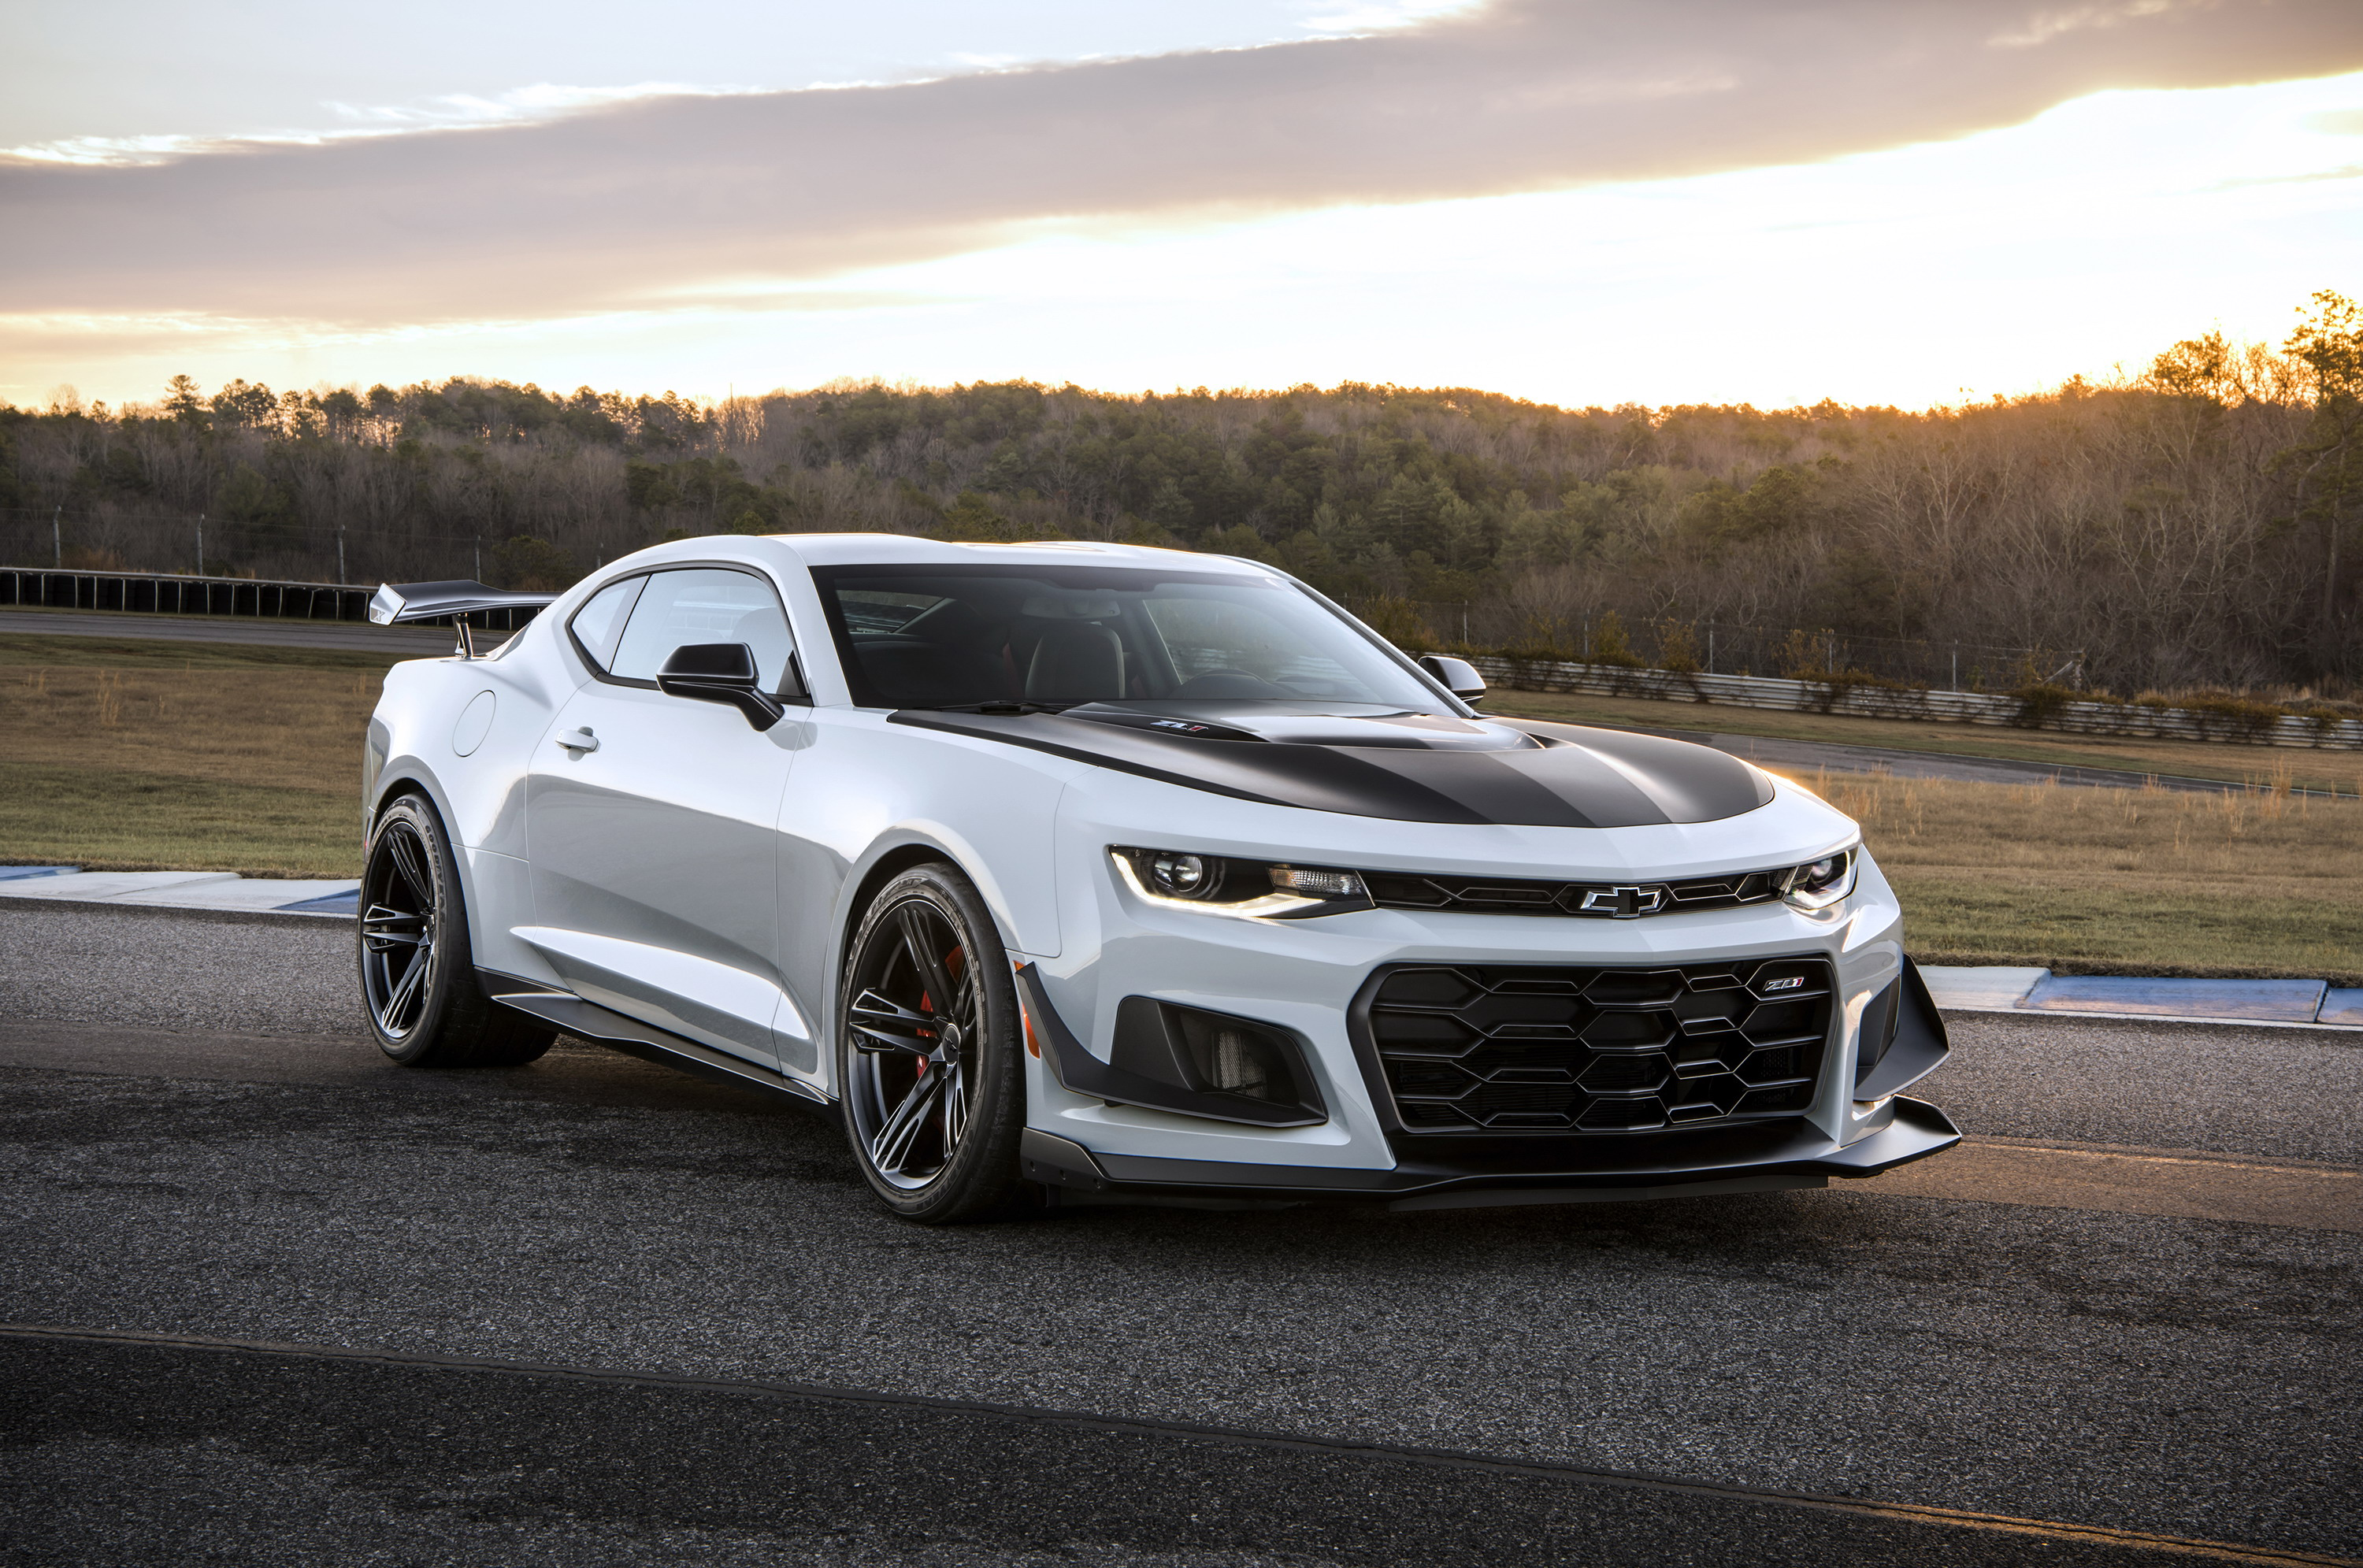 2018 Chevrolet Camaro ZL1 1LE | Top Speed